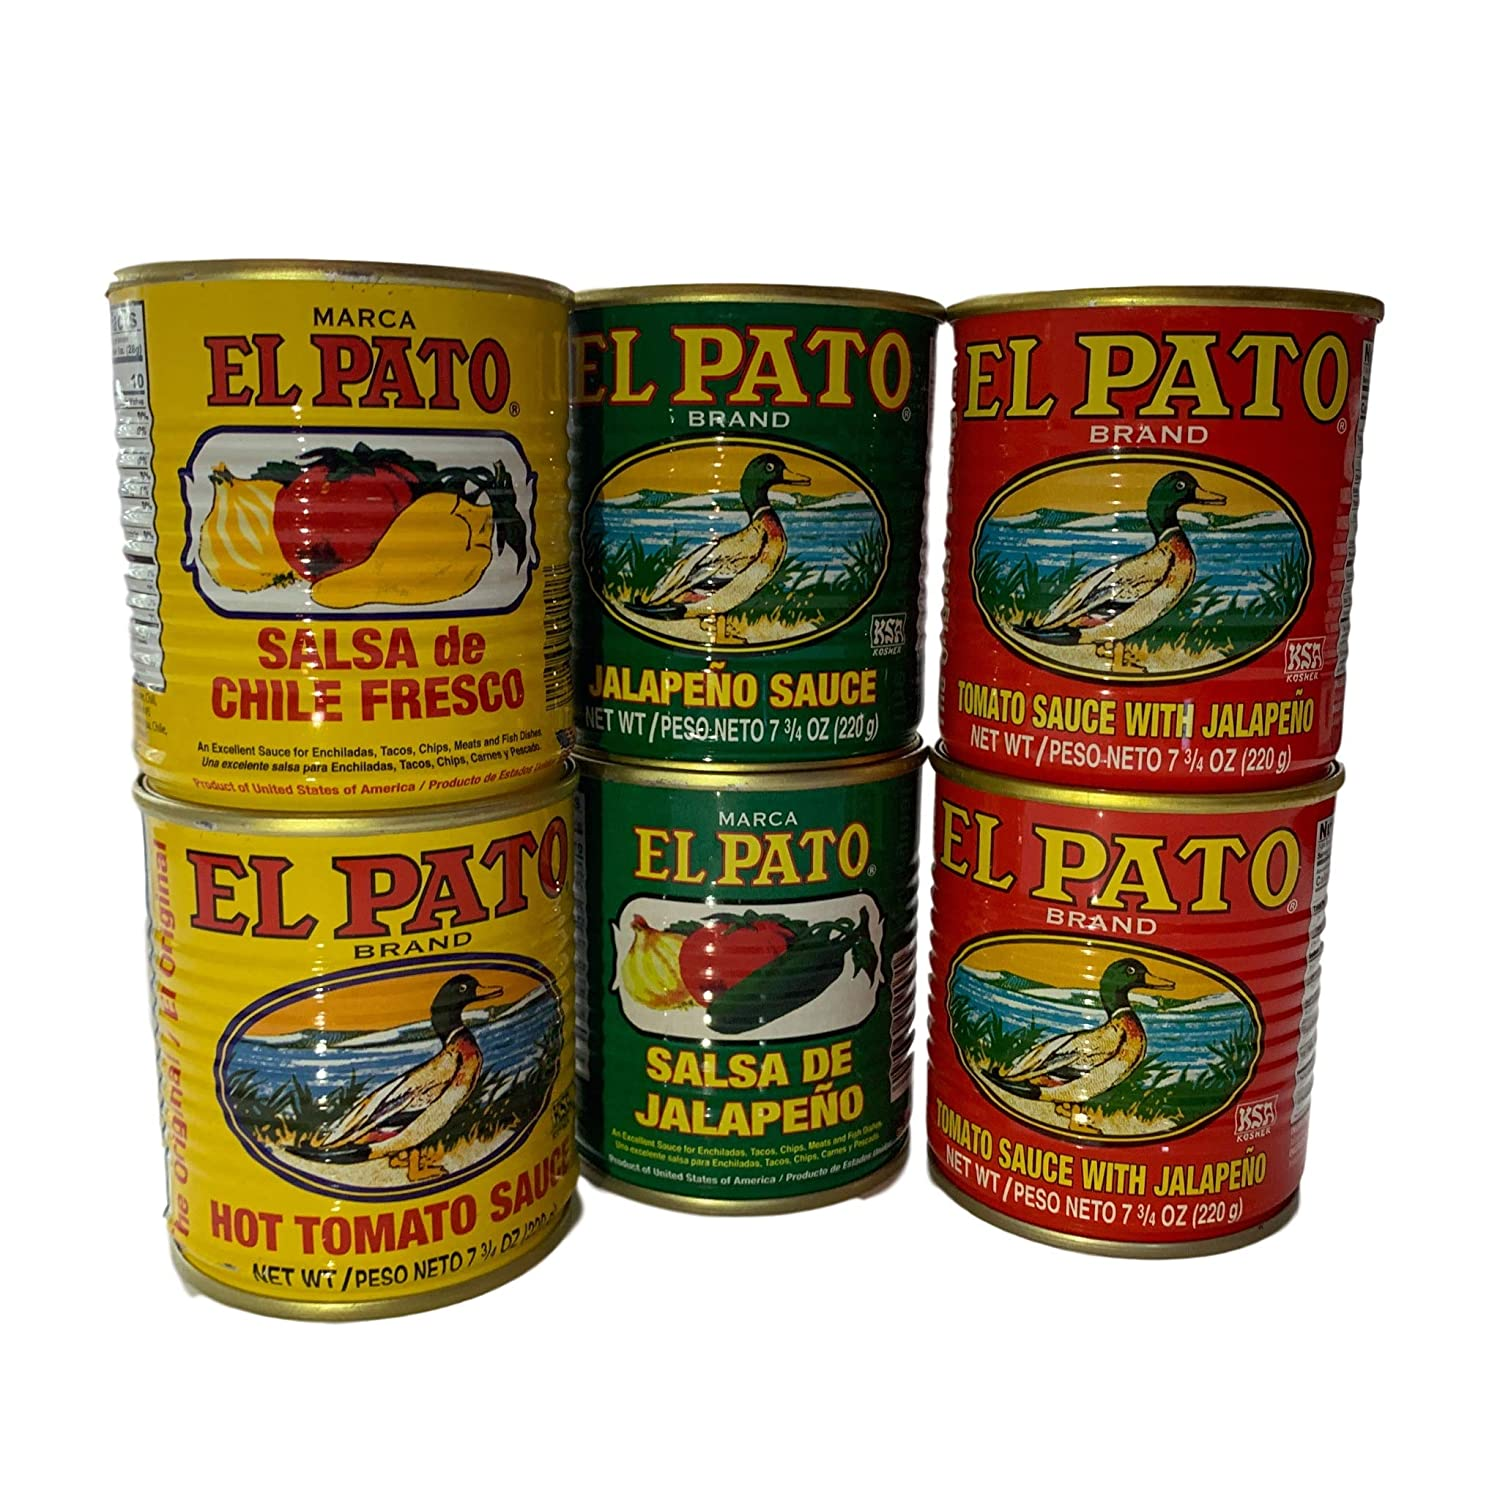 El Pato Assorted Sauce Pack! 2 Each All 3 Flavors Included! Now Your Meal Tastes Authentic!